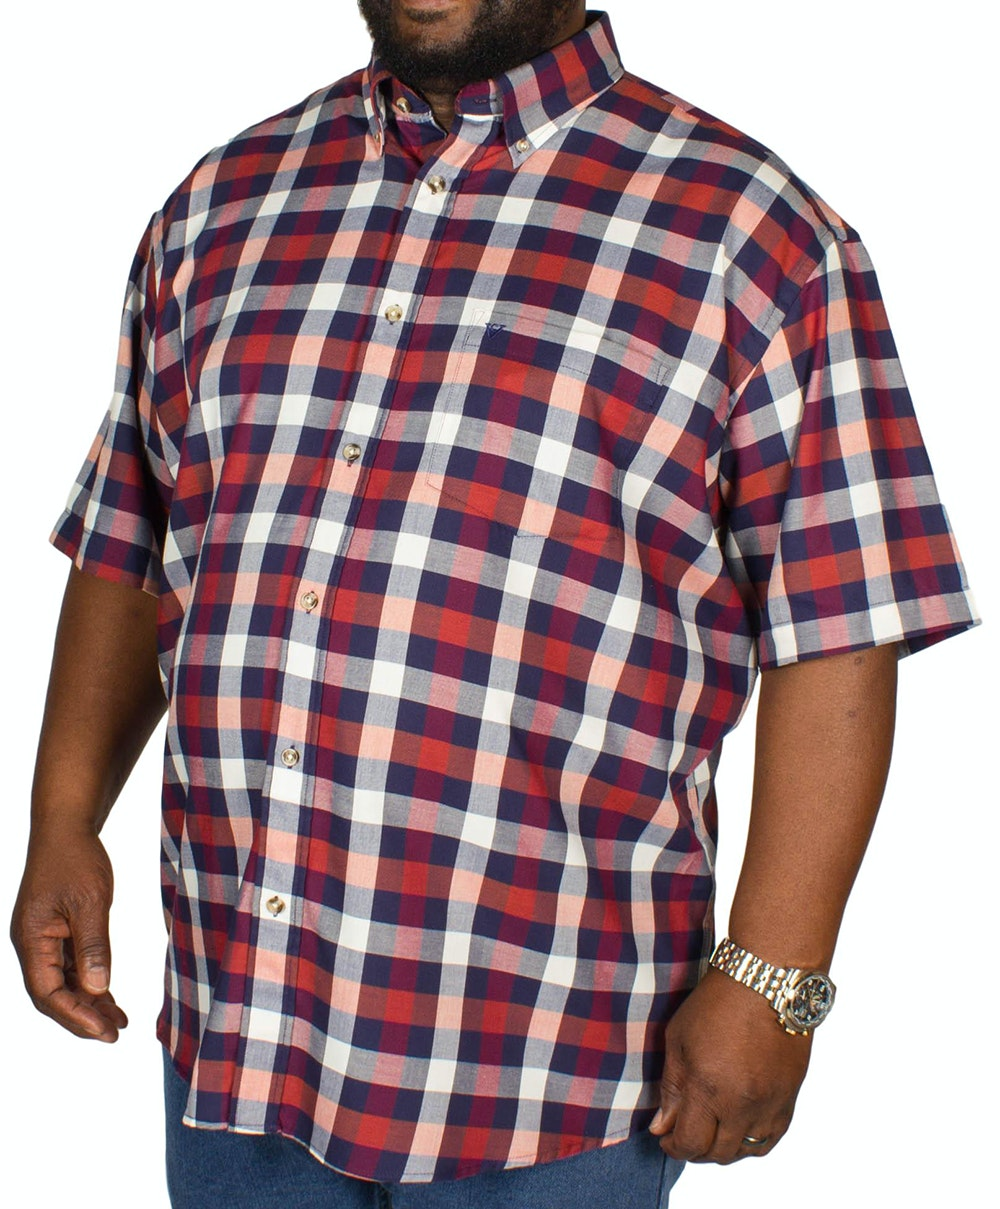 Cotton Valley Check Short Sleeve Shirt Amber/Navy